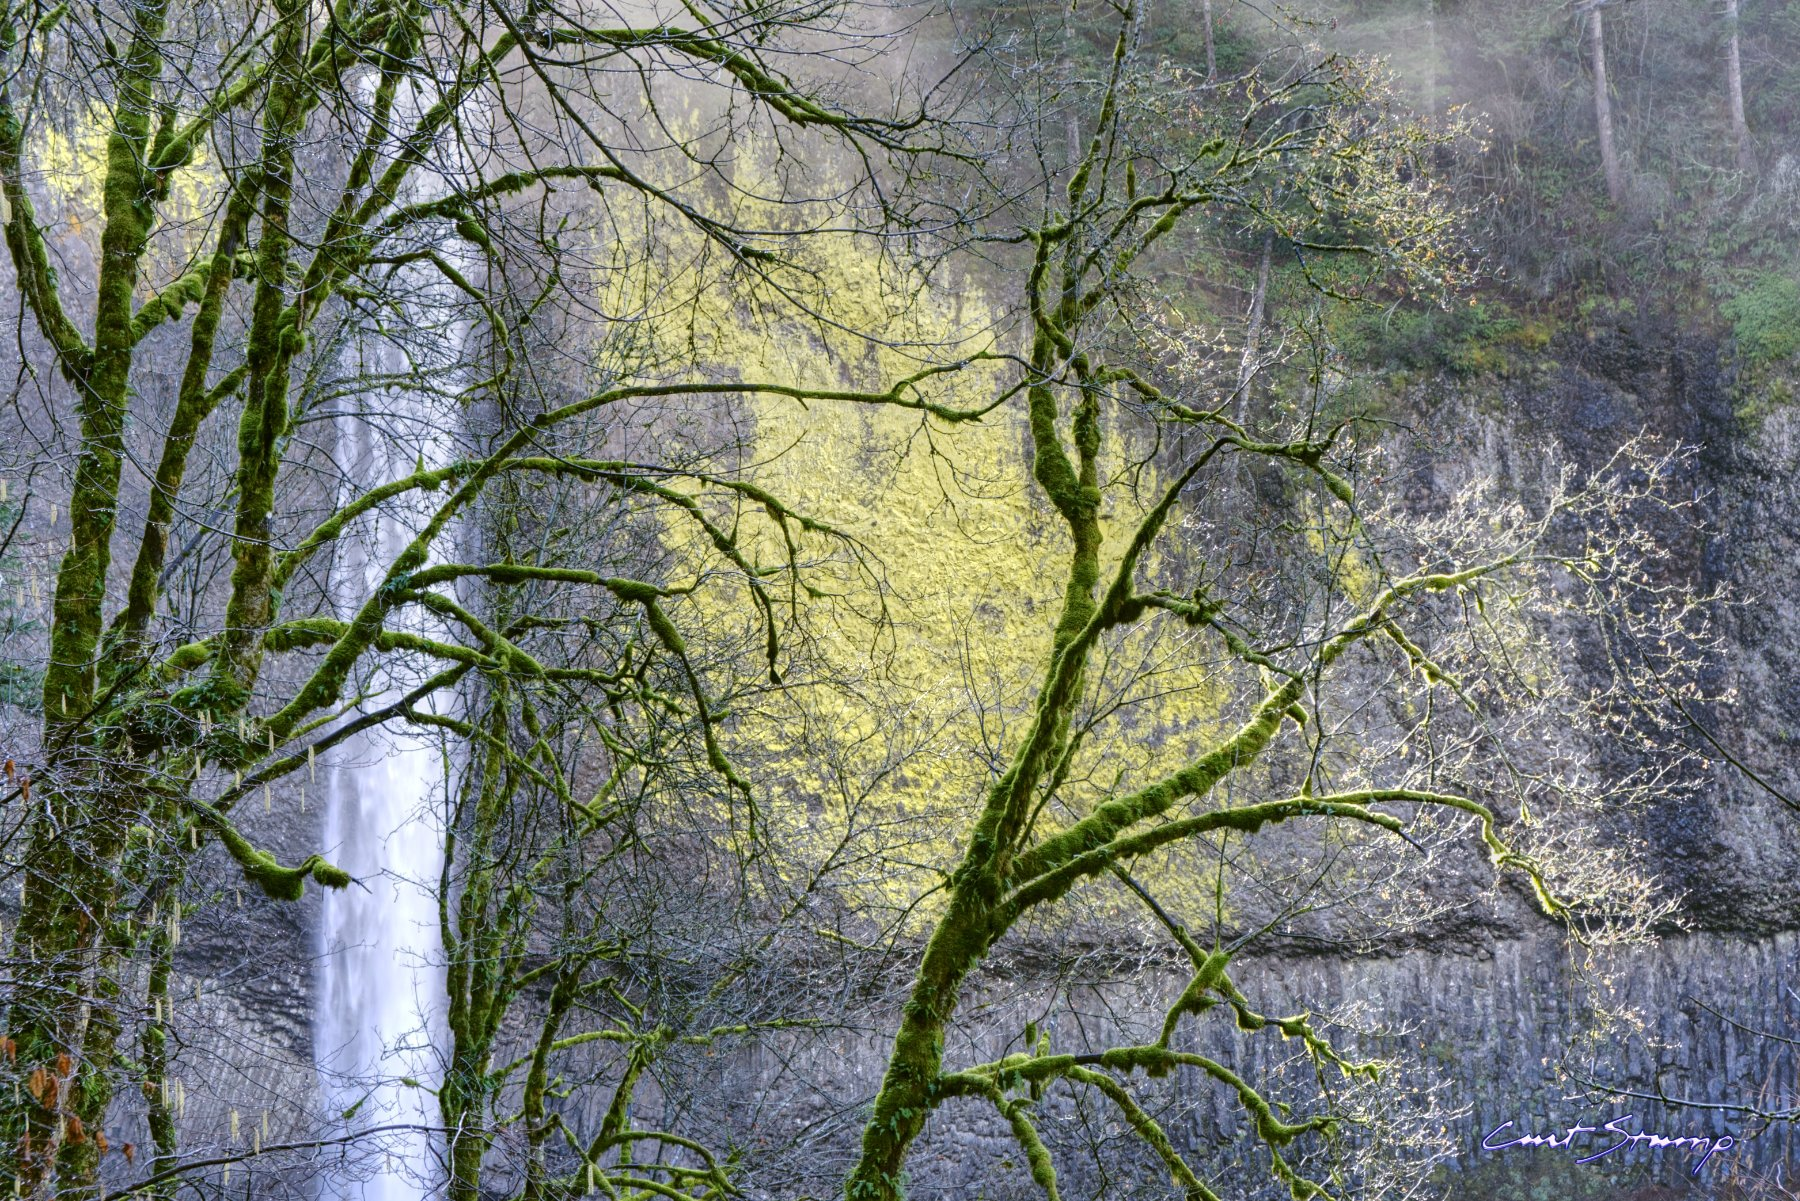 Photo of Latourell Falls near Portland, Oregon. Photo shows bright green moss on trees, waterfall through the trees, and yellow lichen on a rock cliff.